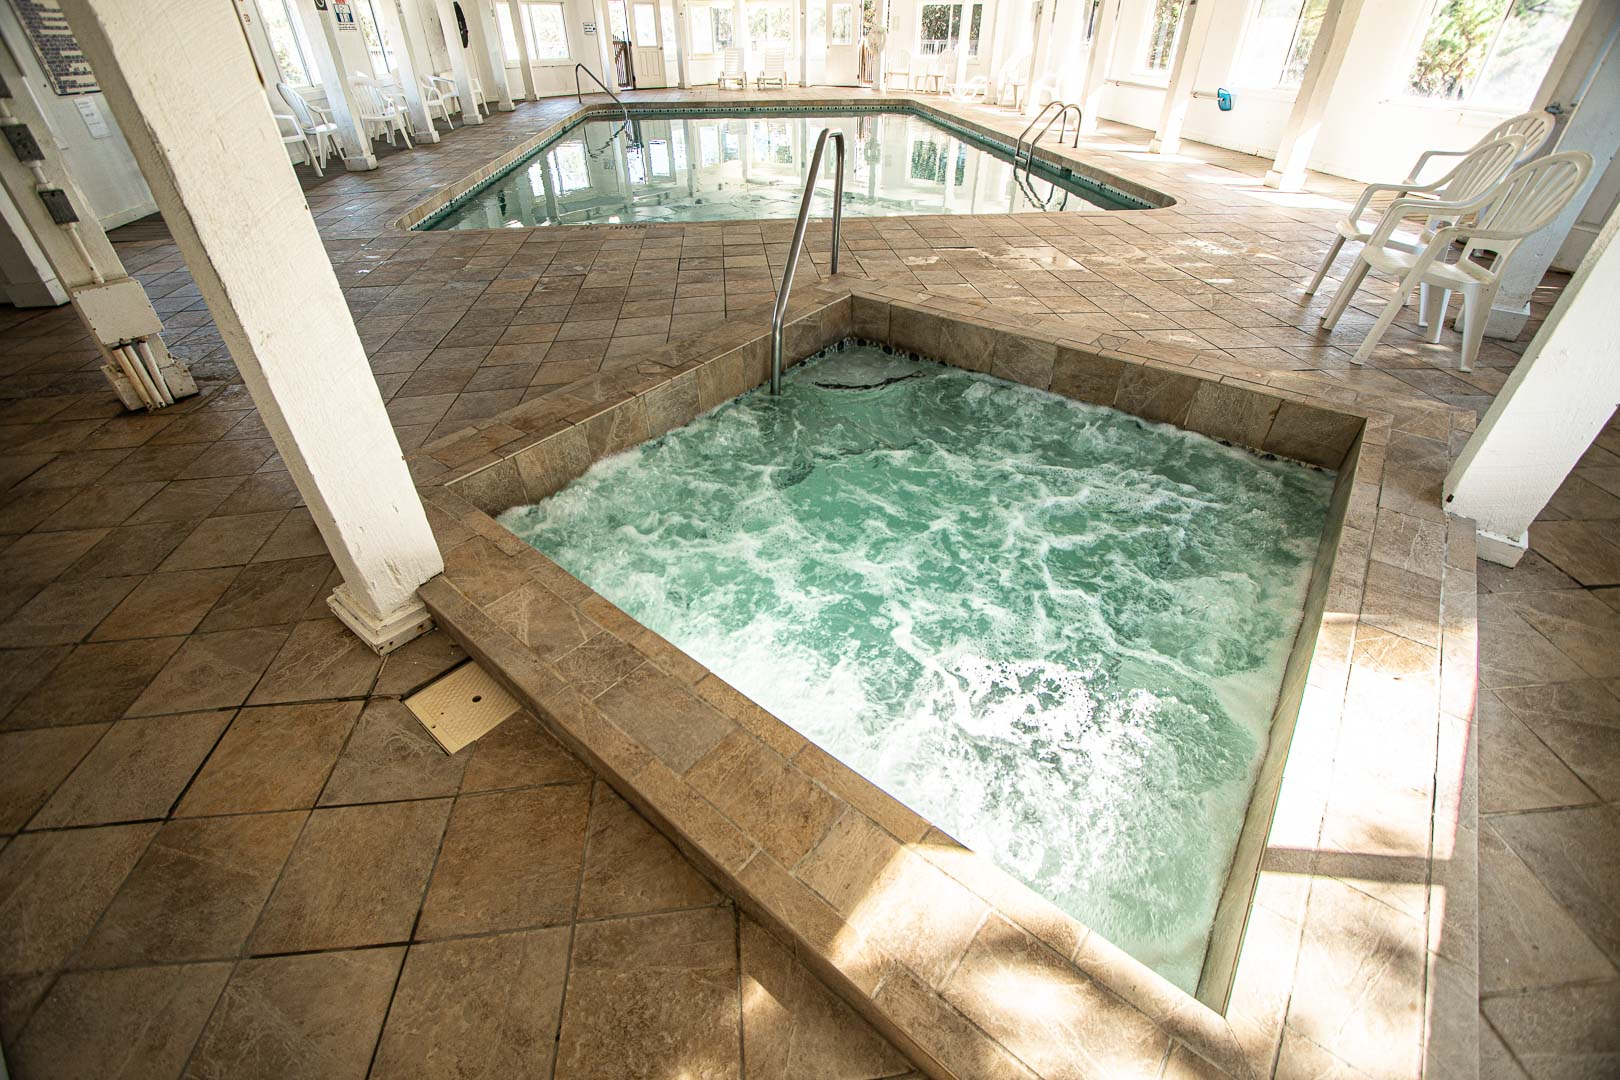 An indoor jacuzzi at VRI's Barrier Island Station in North Carolina.